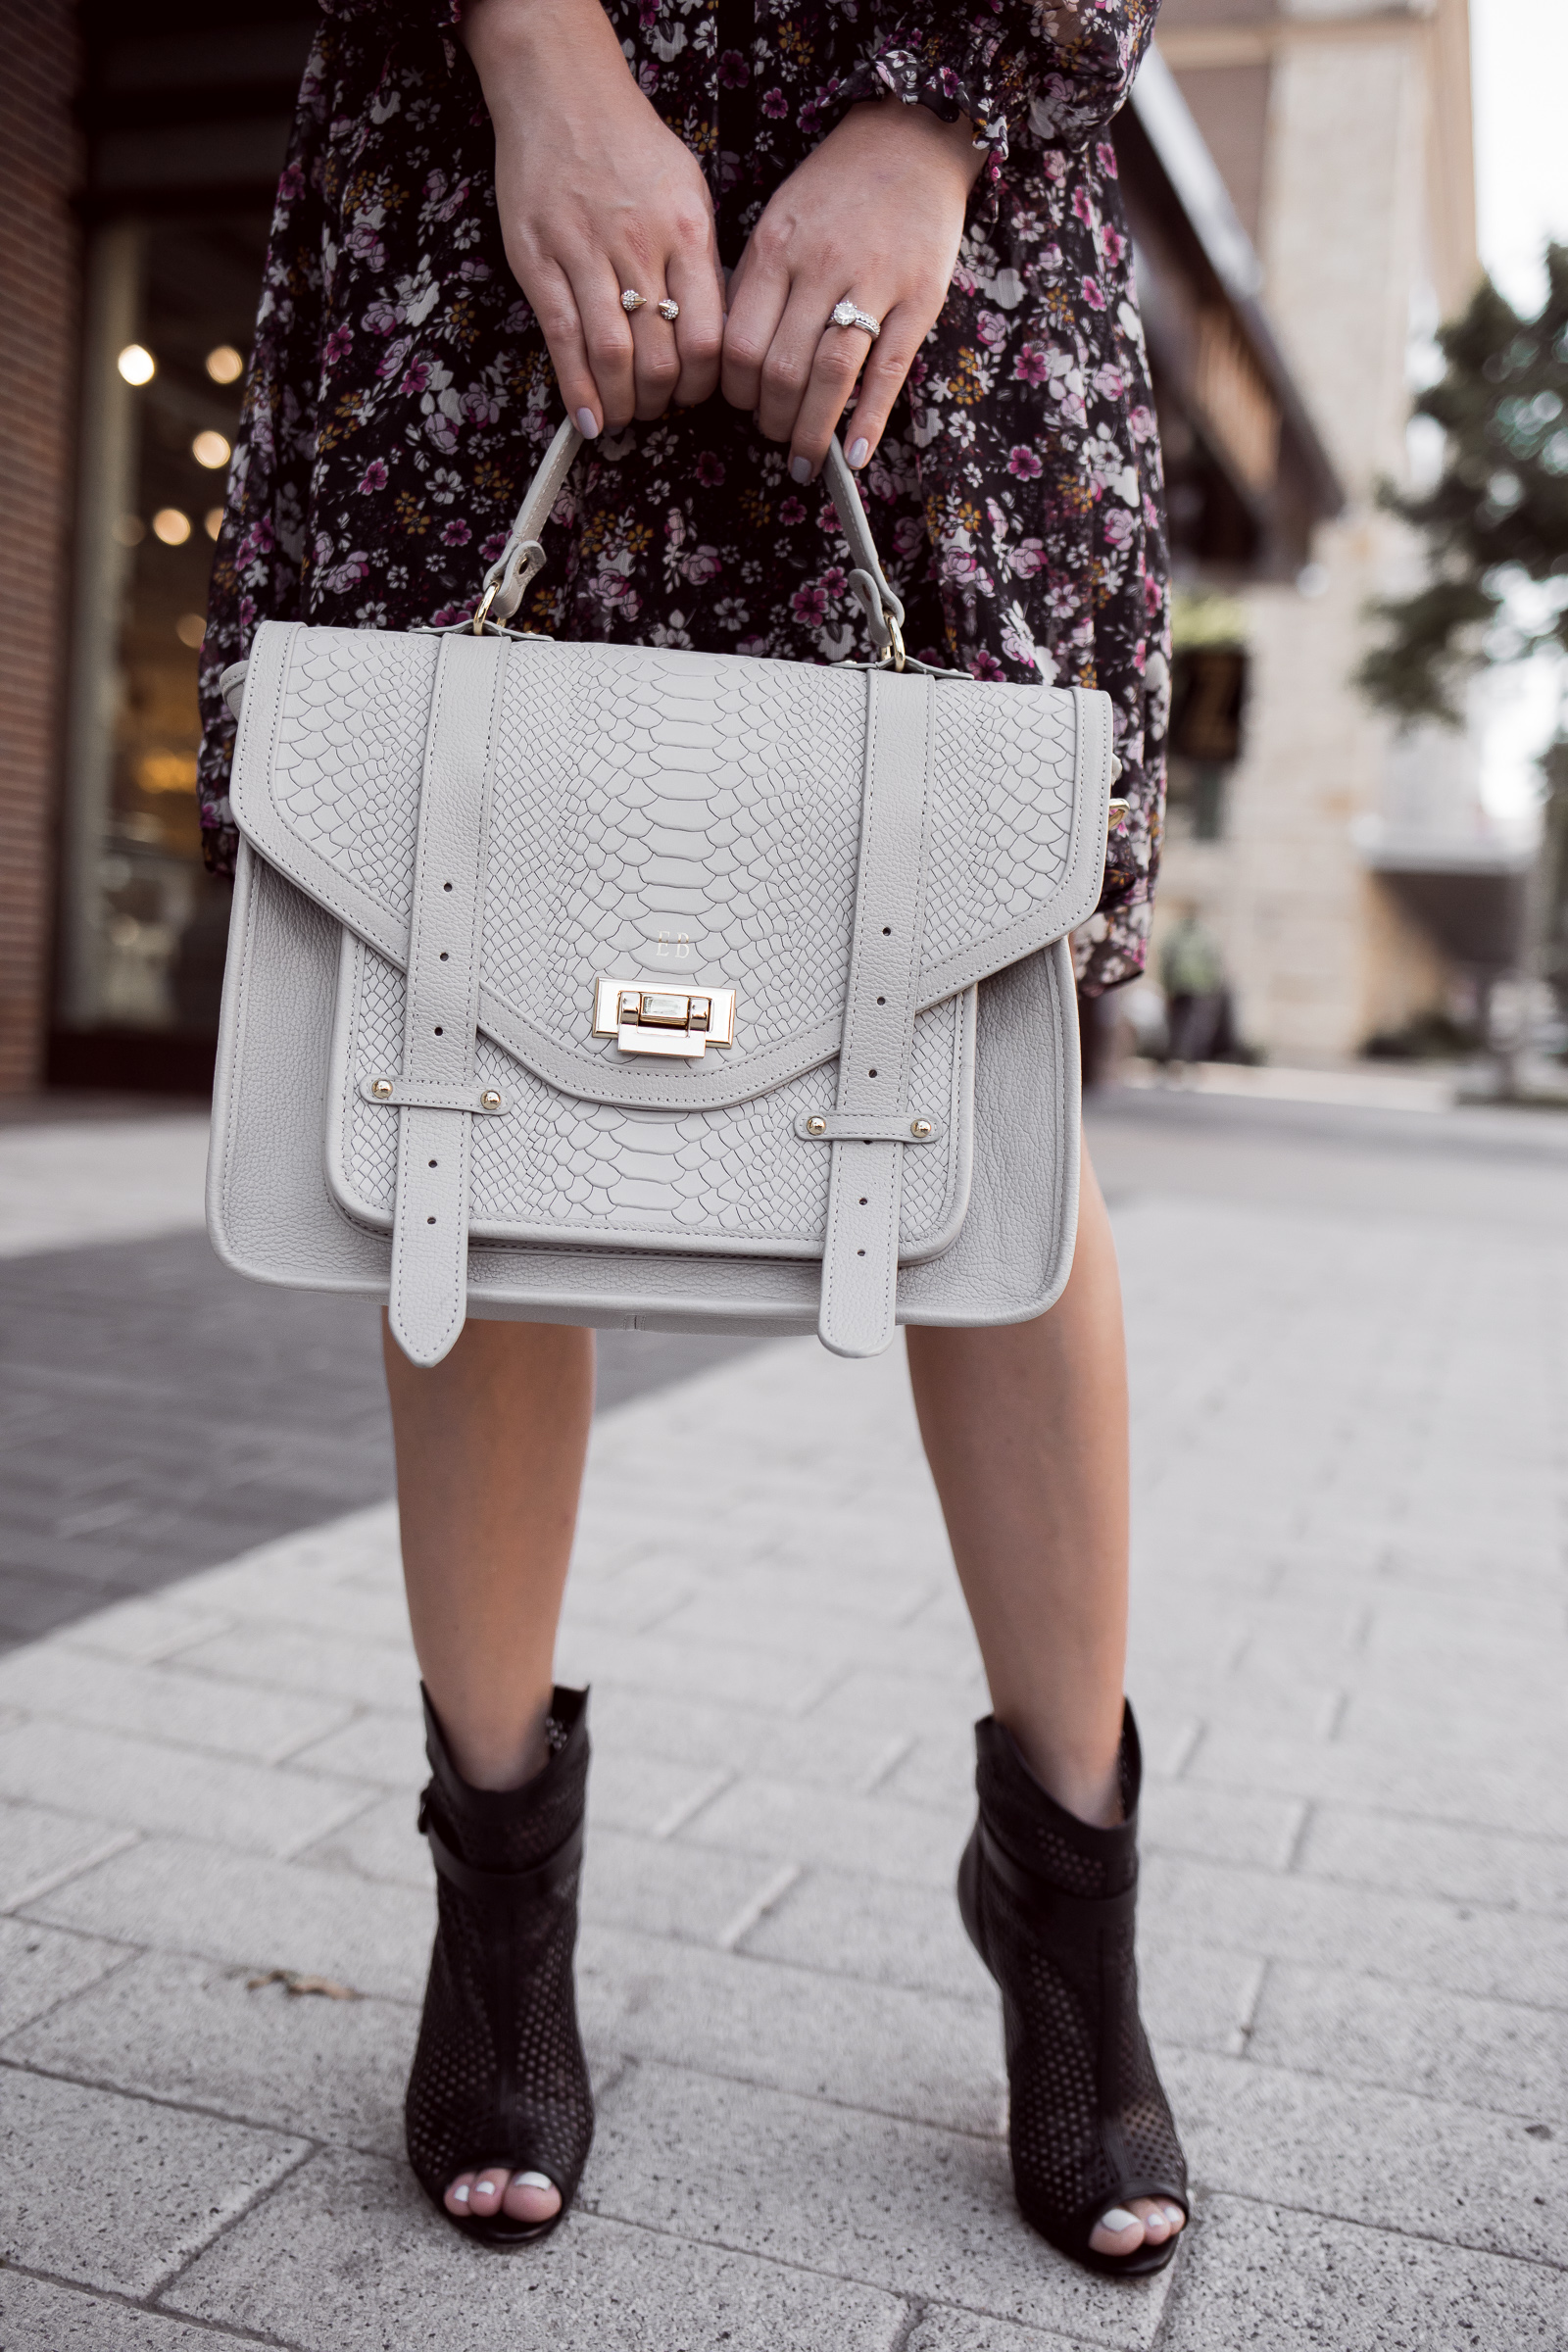 Houston fashion blogger Uptown with Elly Brown wears a Grey Gigi New York Saddle Bag